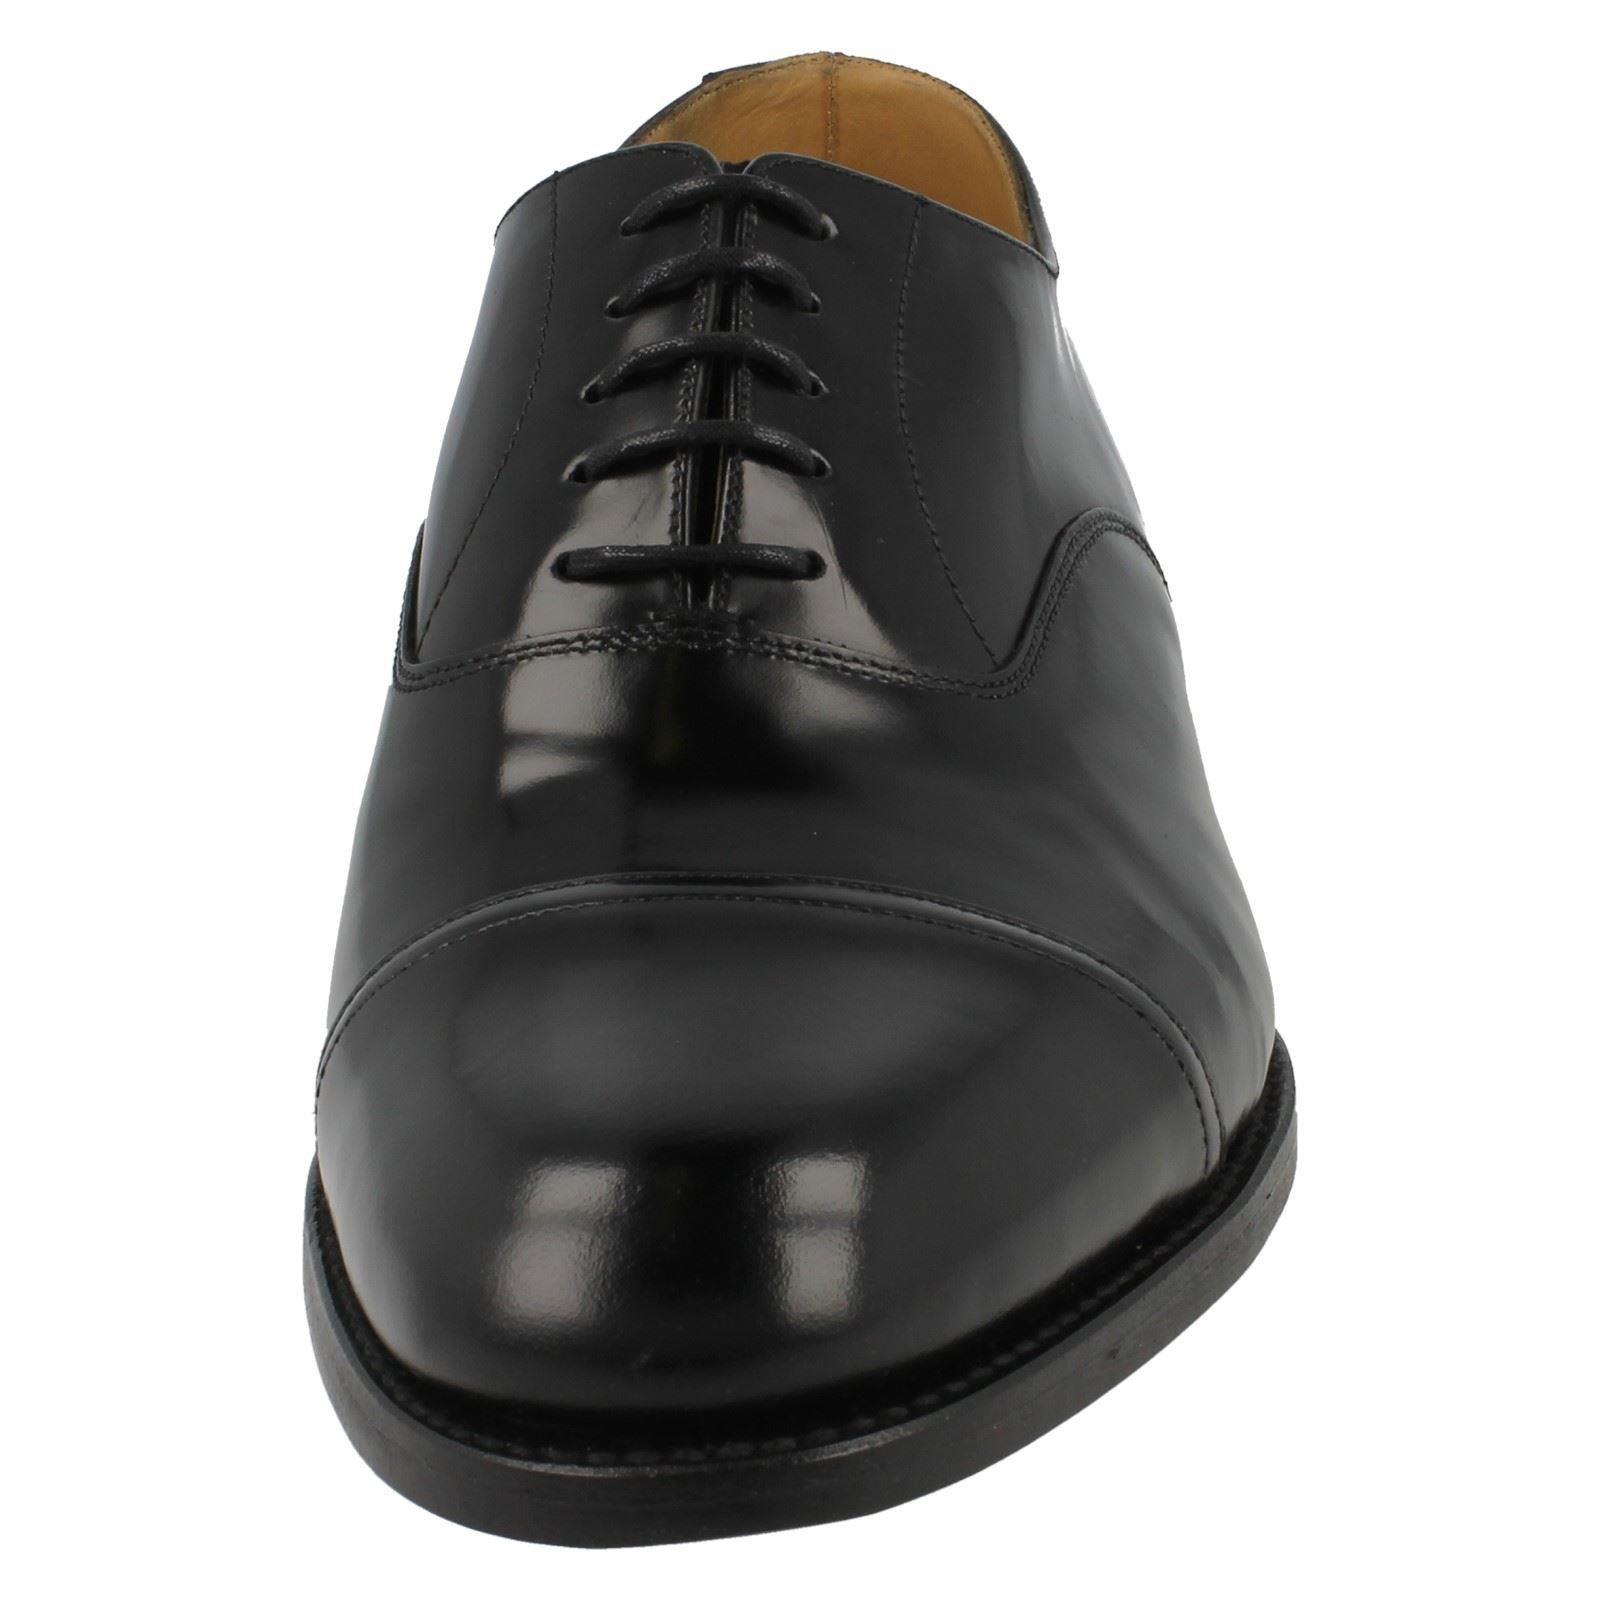 Toe Cap Up Classic Elland Black Oxford Lace Smart Shoes Loake Leather Mens Style 0FWfYqU0